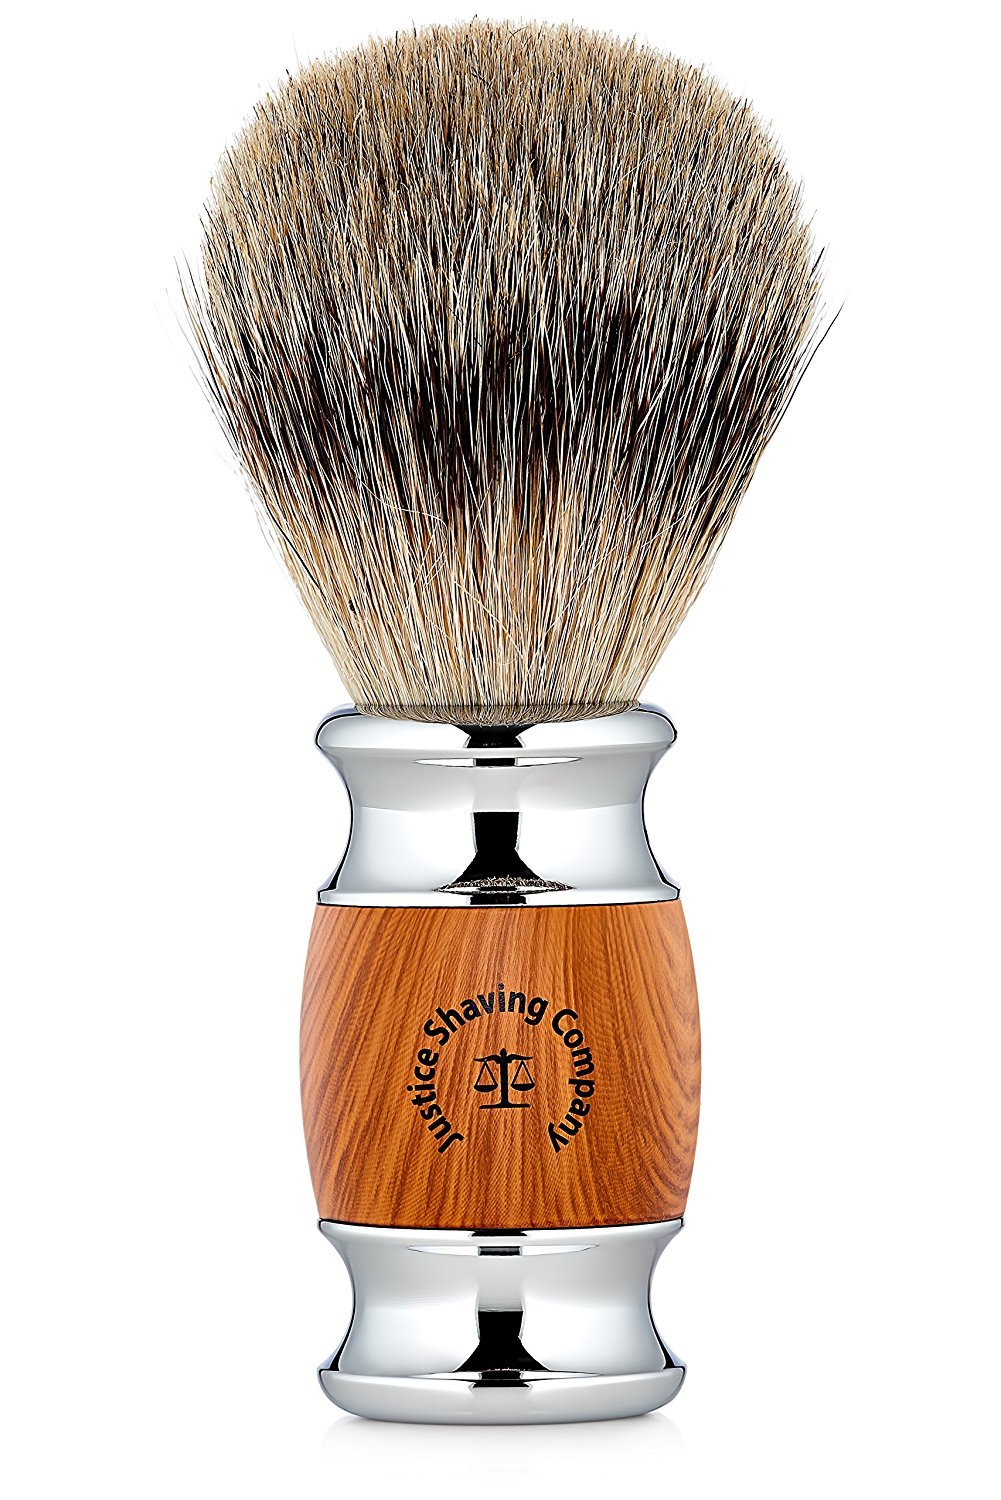 Justice Shaving Company's Super Badger Hair Shaving Brush - You Deserve a Premium Shaving Experience - An Elite Badger Shave Brush at an Affordable Price